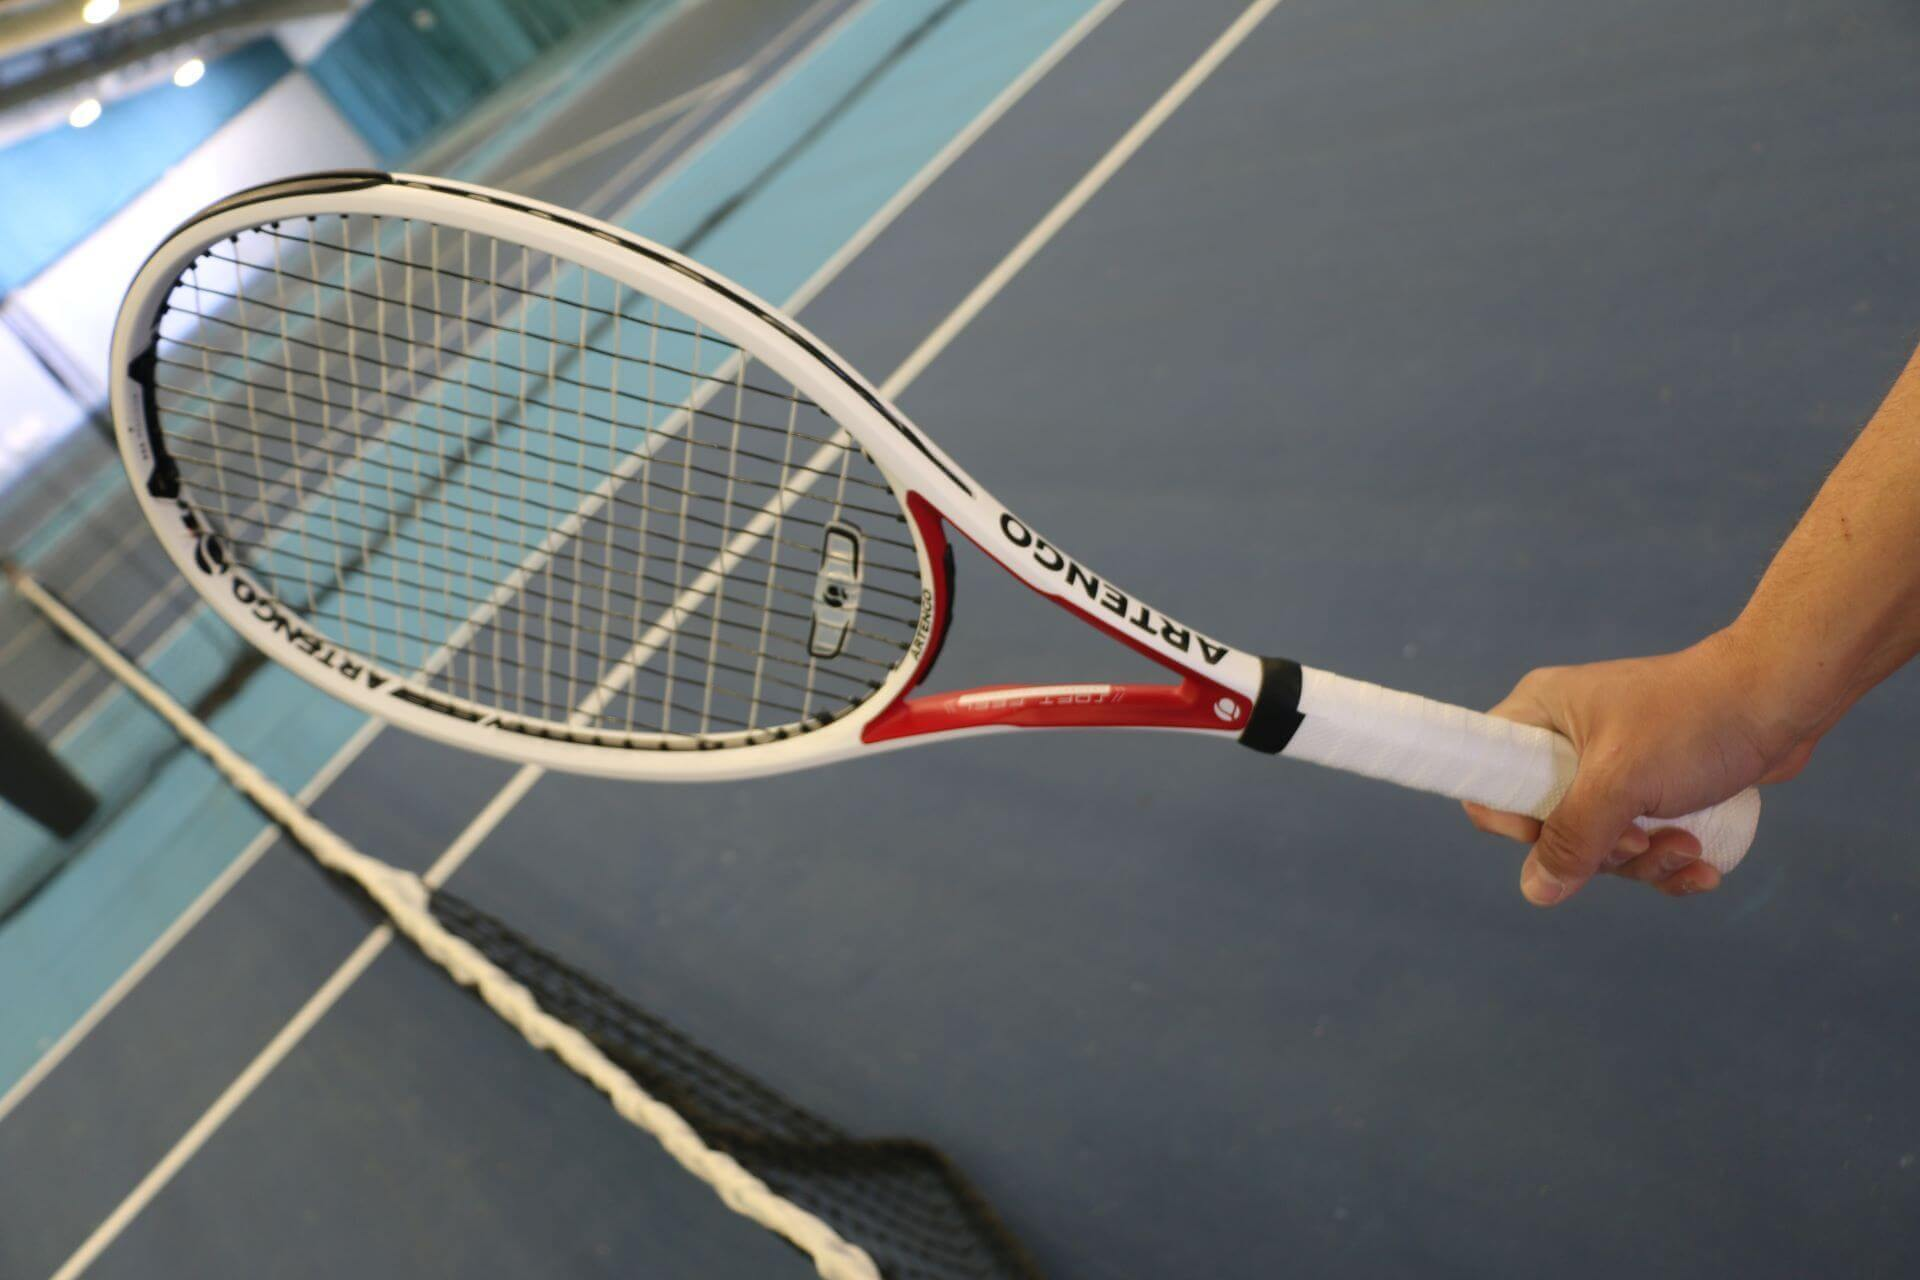 Discover the Best Grip for Your Tennis Serve